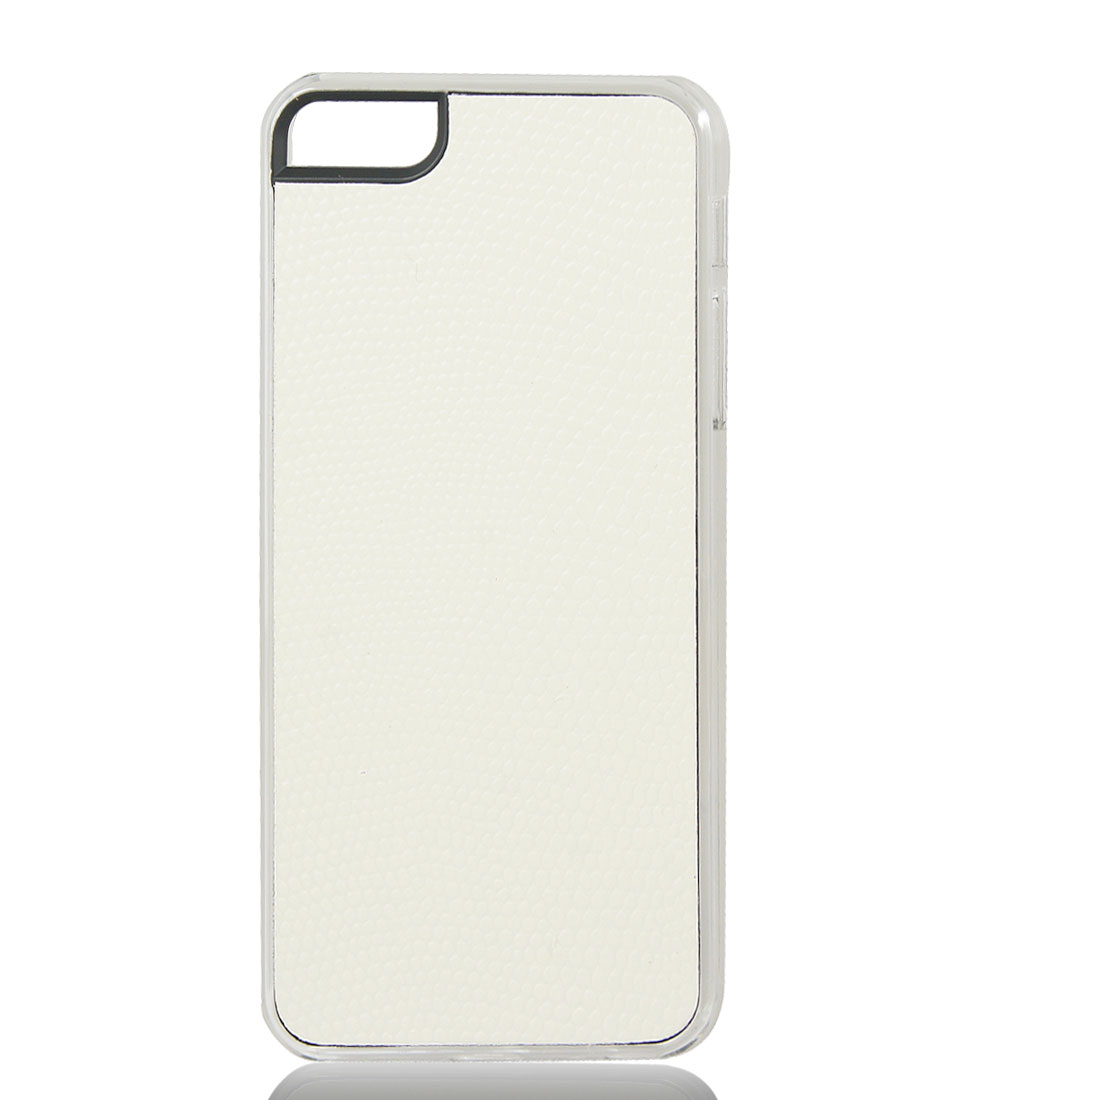 White Snake Pattern Hard Back Case Cover Skin for iPhone 5 5G